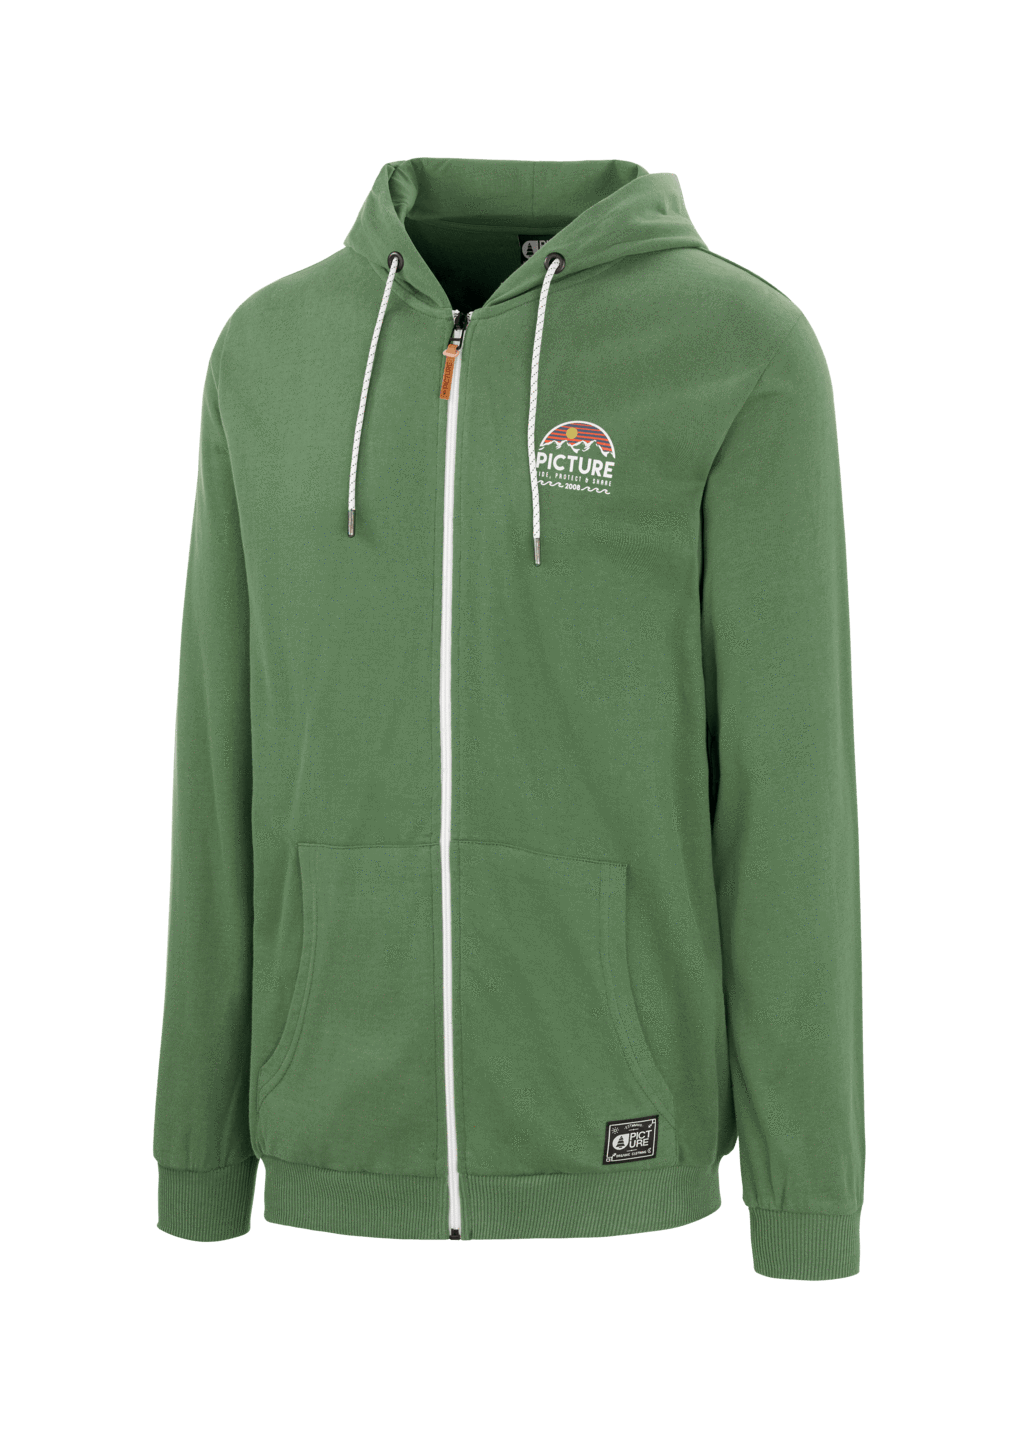 Picture Organic - M's Hamilton Zip Hoodie - Organic Cotton - Weekendbee - sustainable sportswear